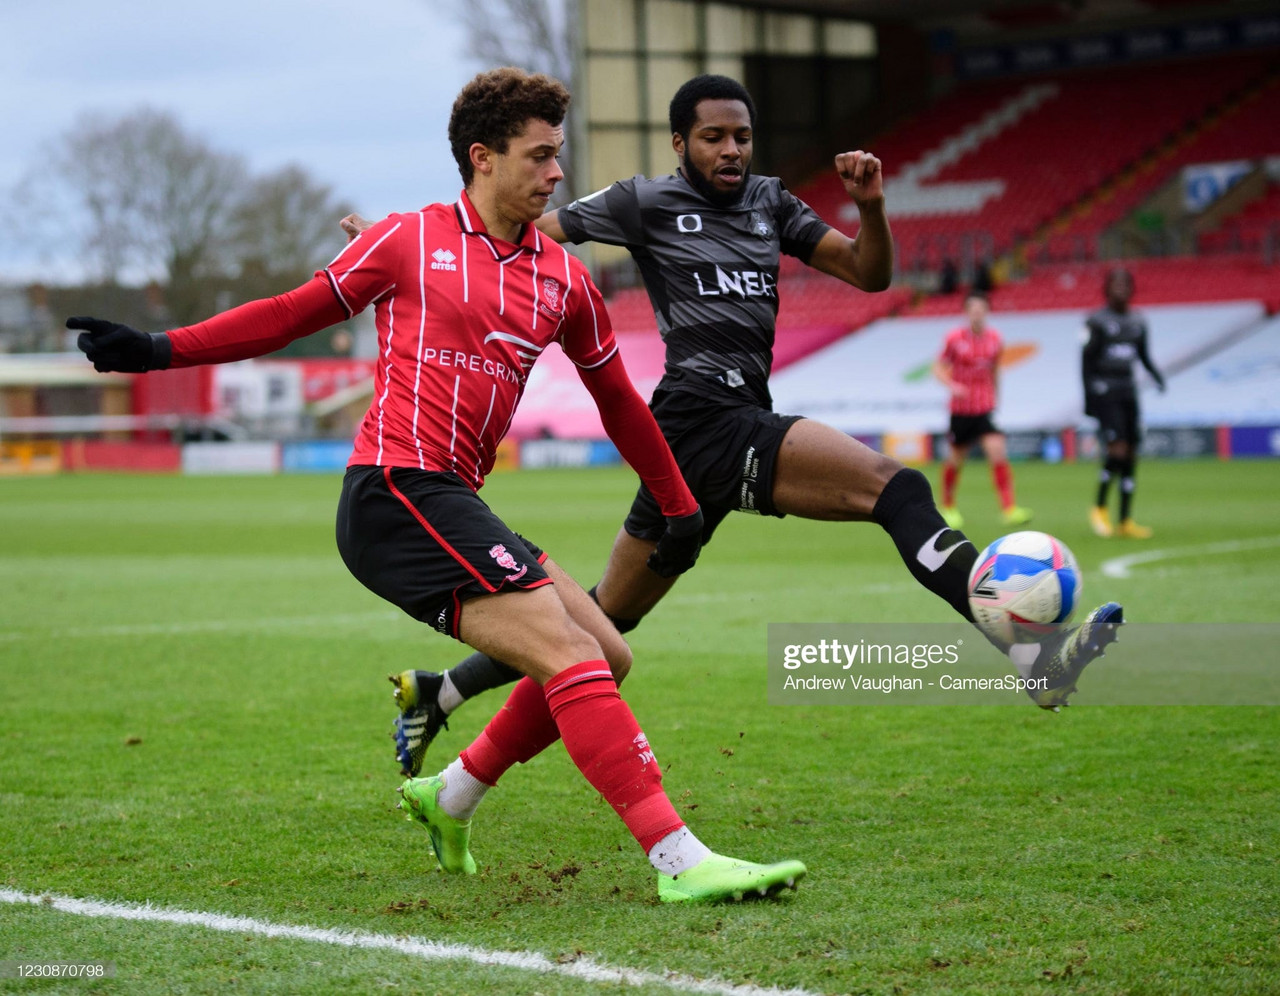 Lincoln City 0-1 Doncaster Rovers: Imps denied from penalty spot twice in shock defeat